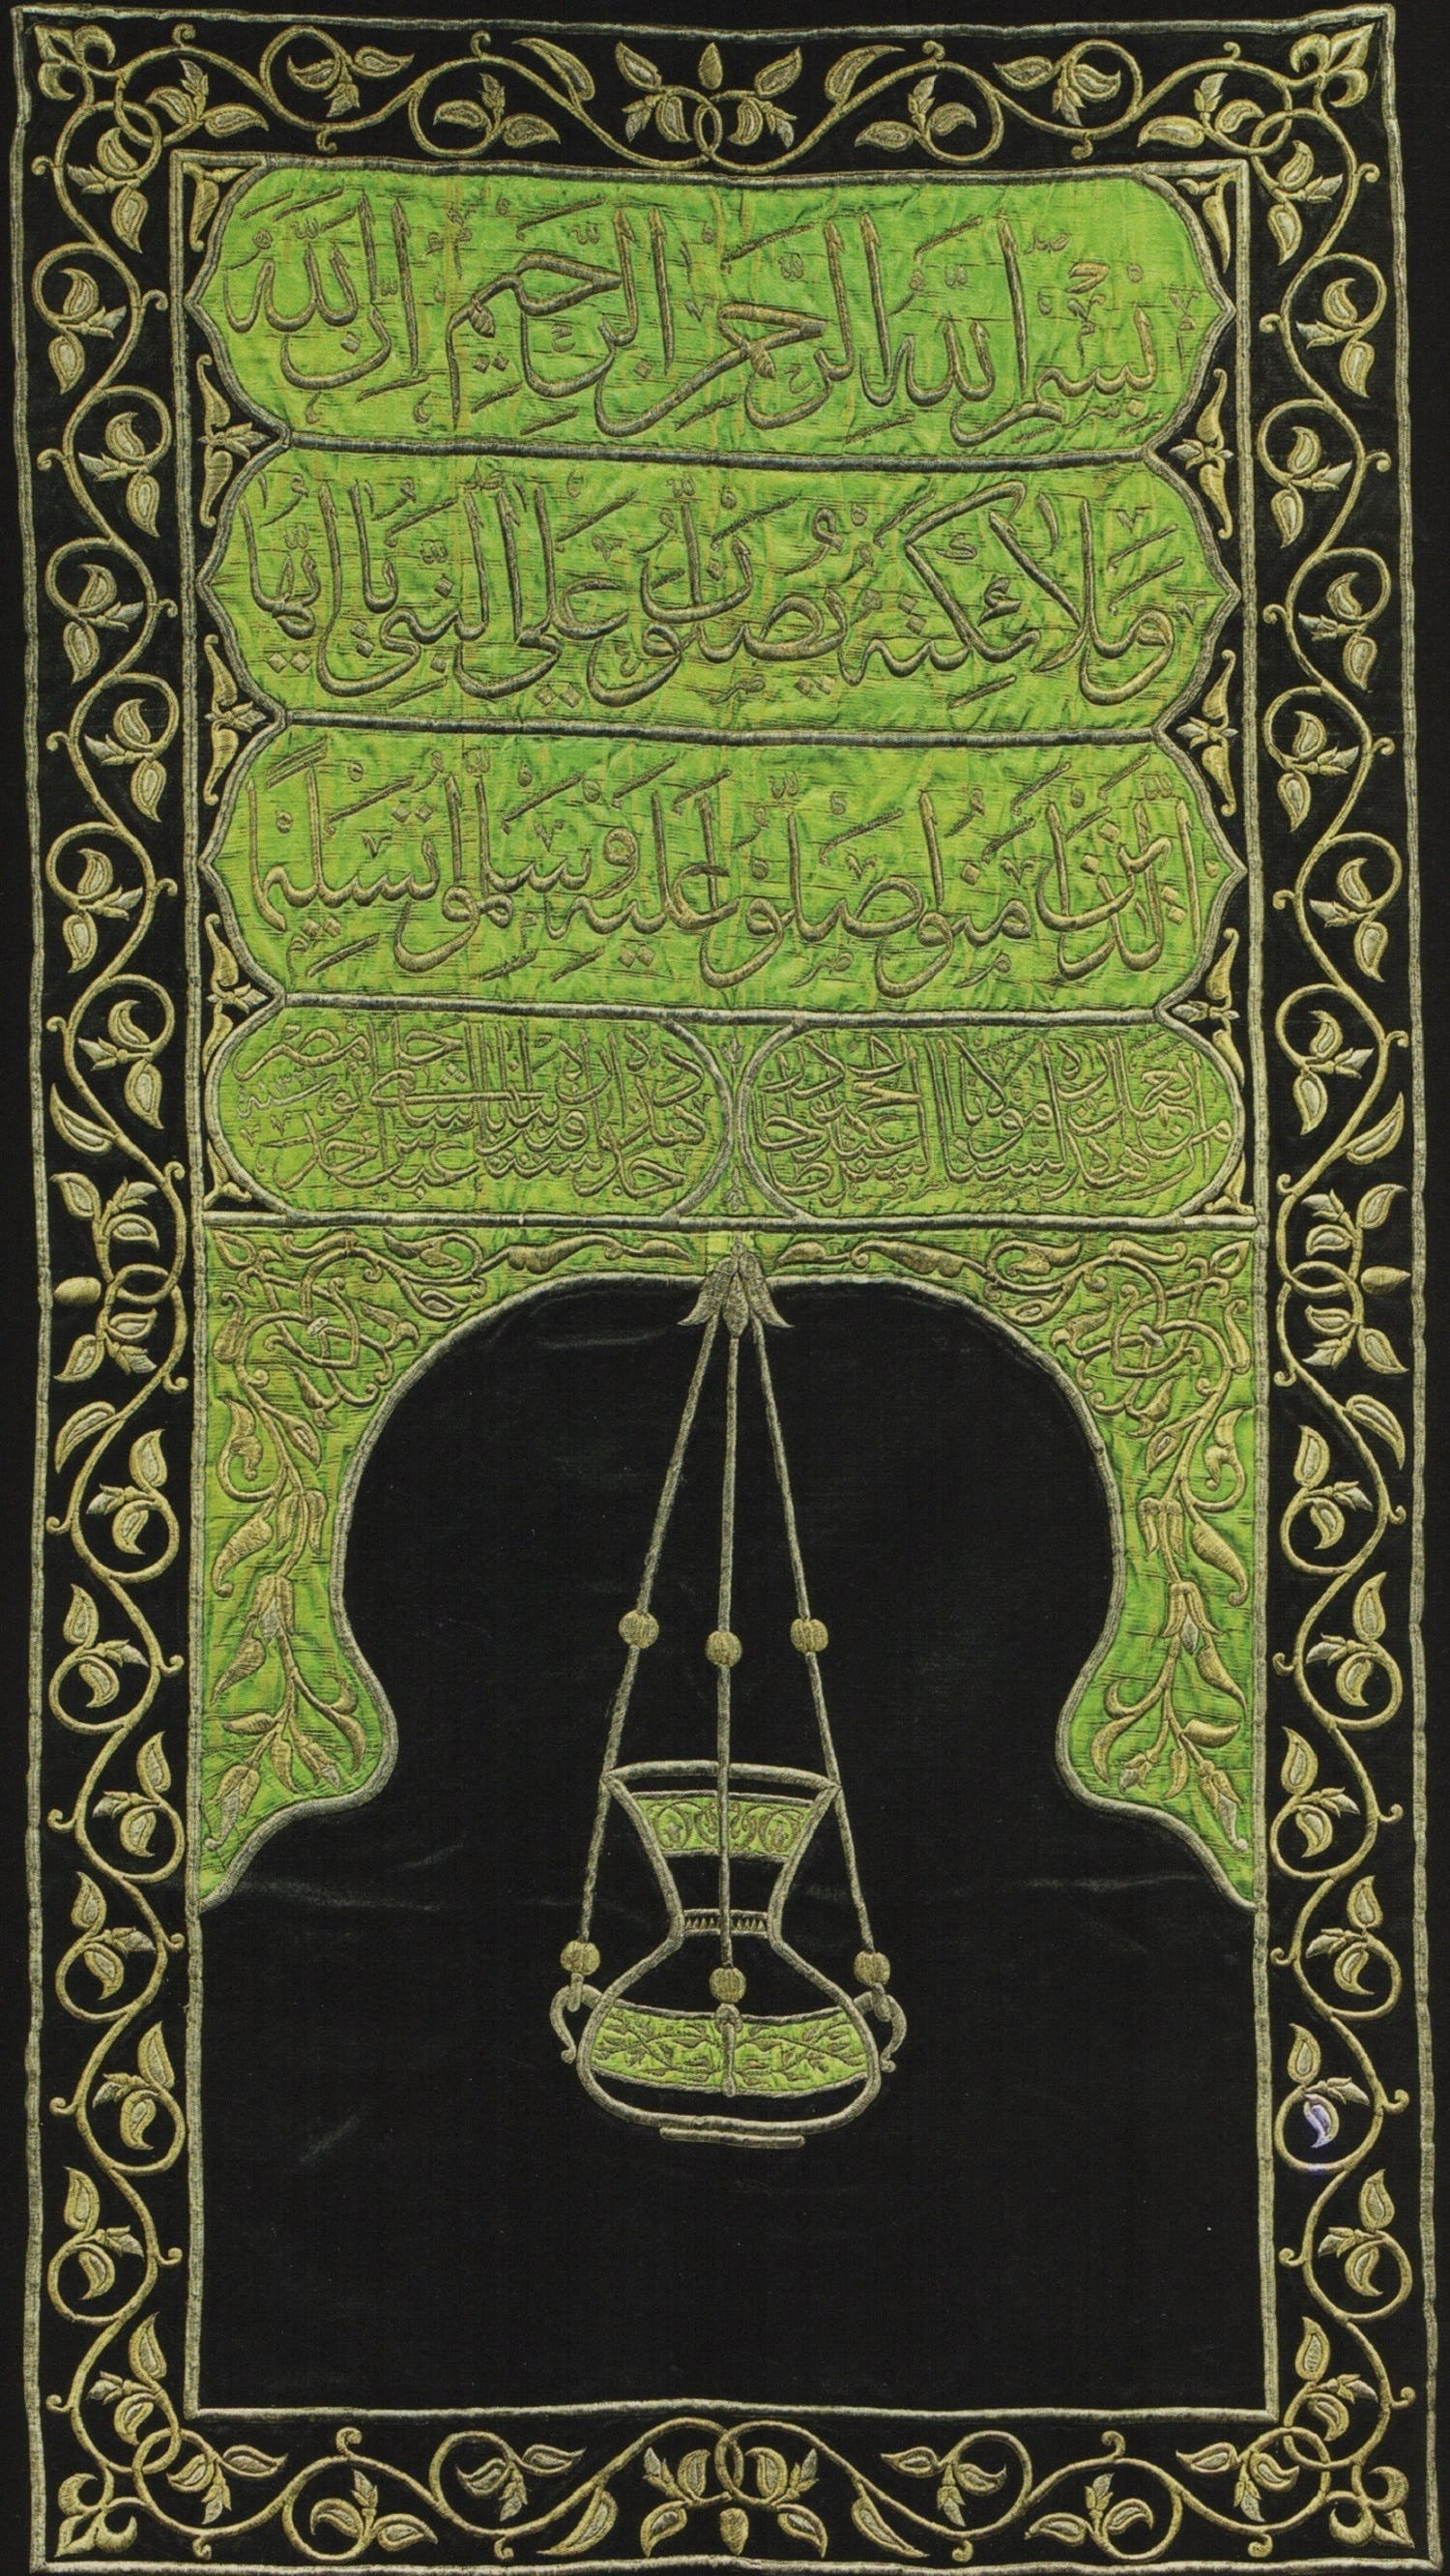 Silk hanging panel from the sanctuary in Mecca, 1321 AH, 1903/4 CE, Egypt, Metal-thread embroidered silk. Text from Holy Qur'an chapter 33 al-Ahzab (The Joint Forces), verse 56. (Courtesy: Sharjah Museum of Islamic Civilization)